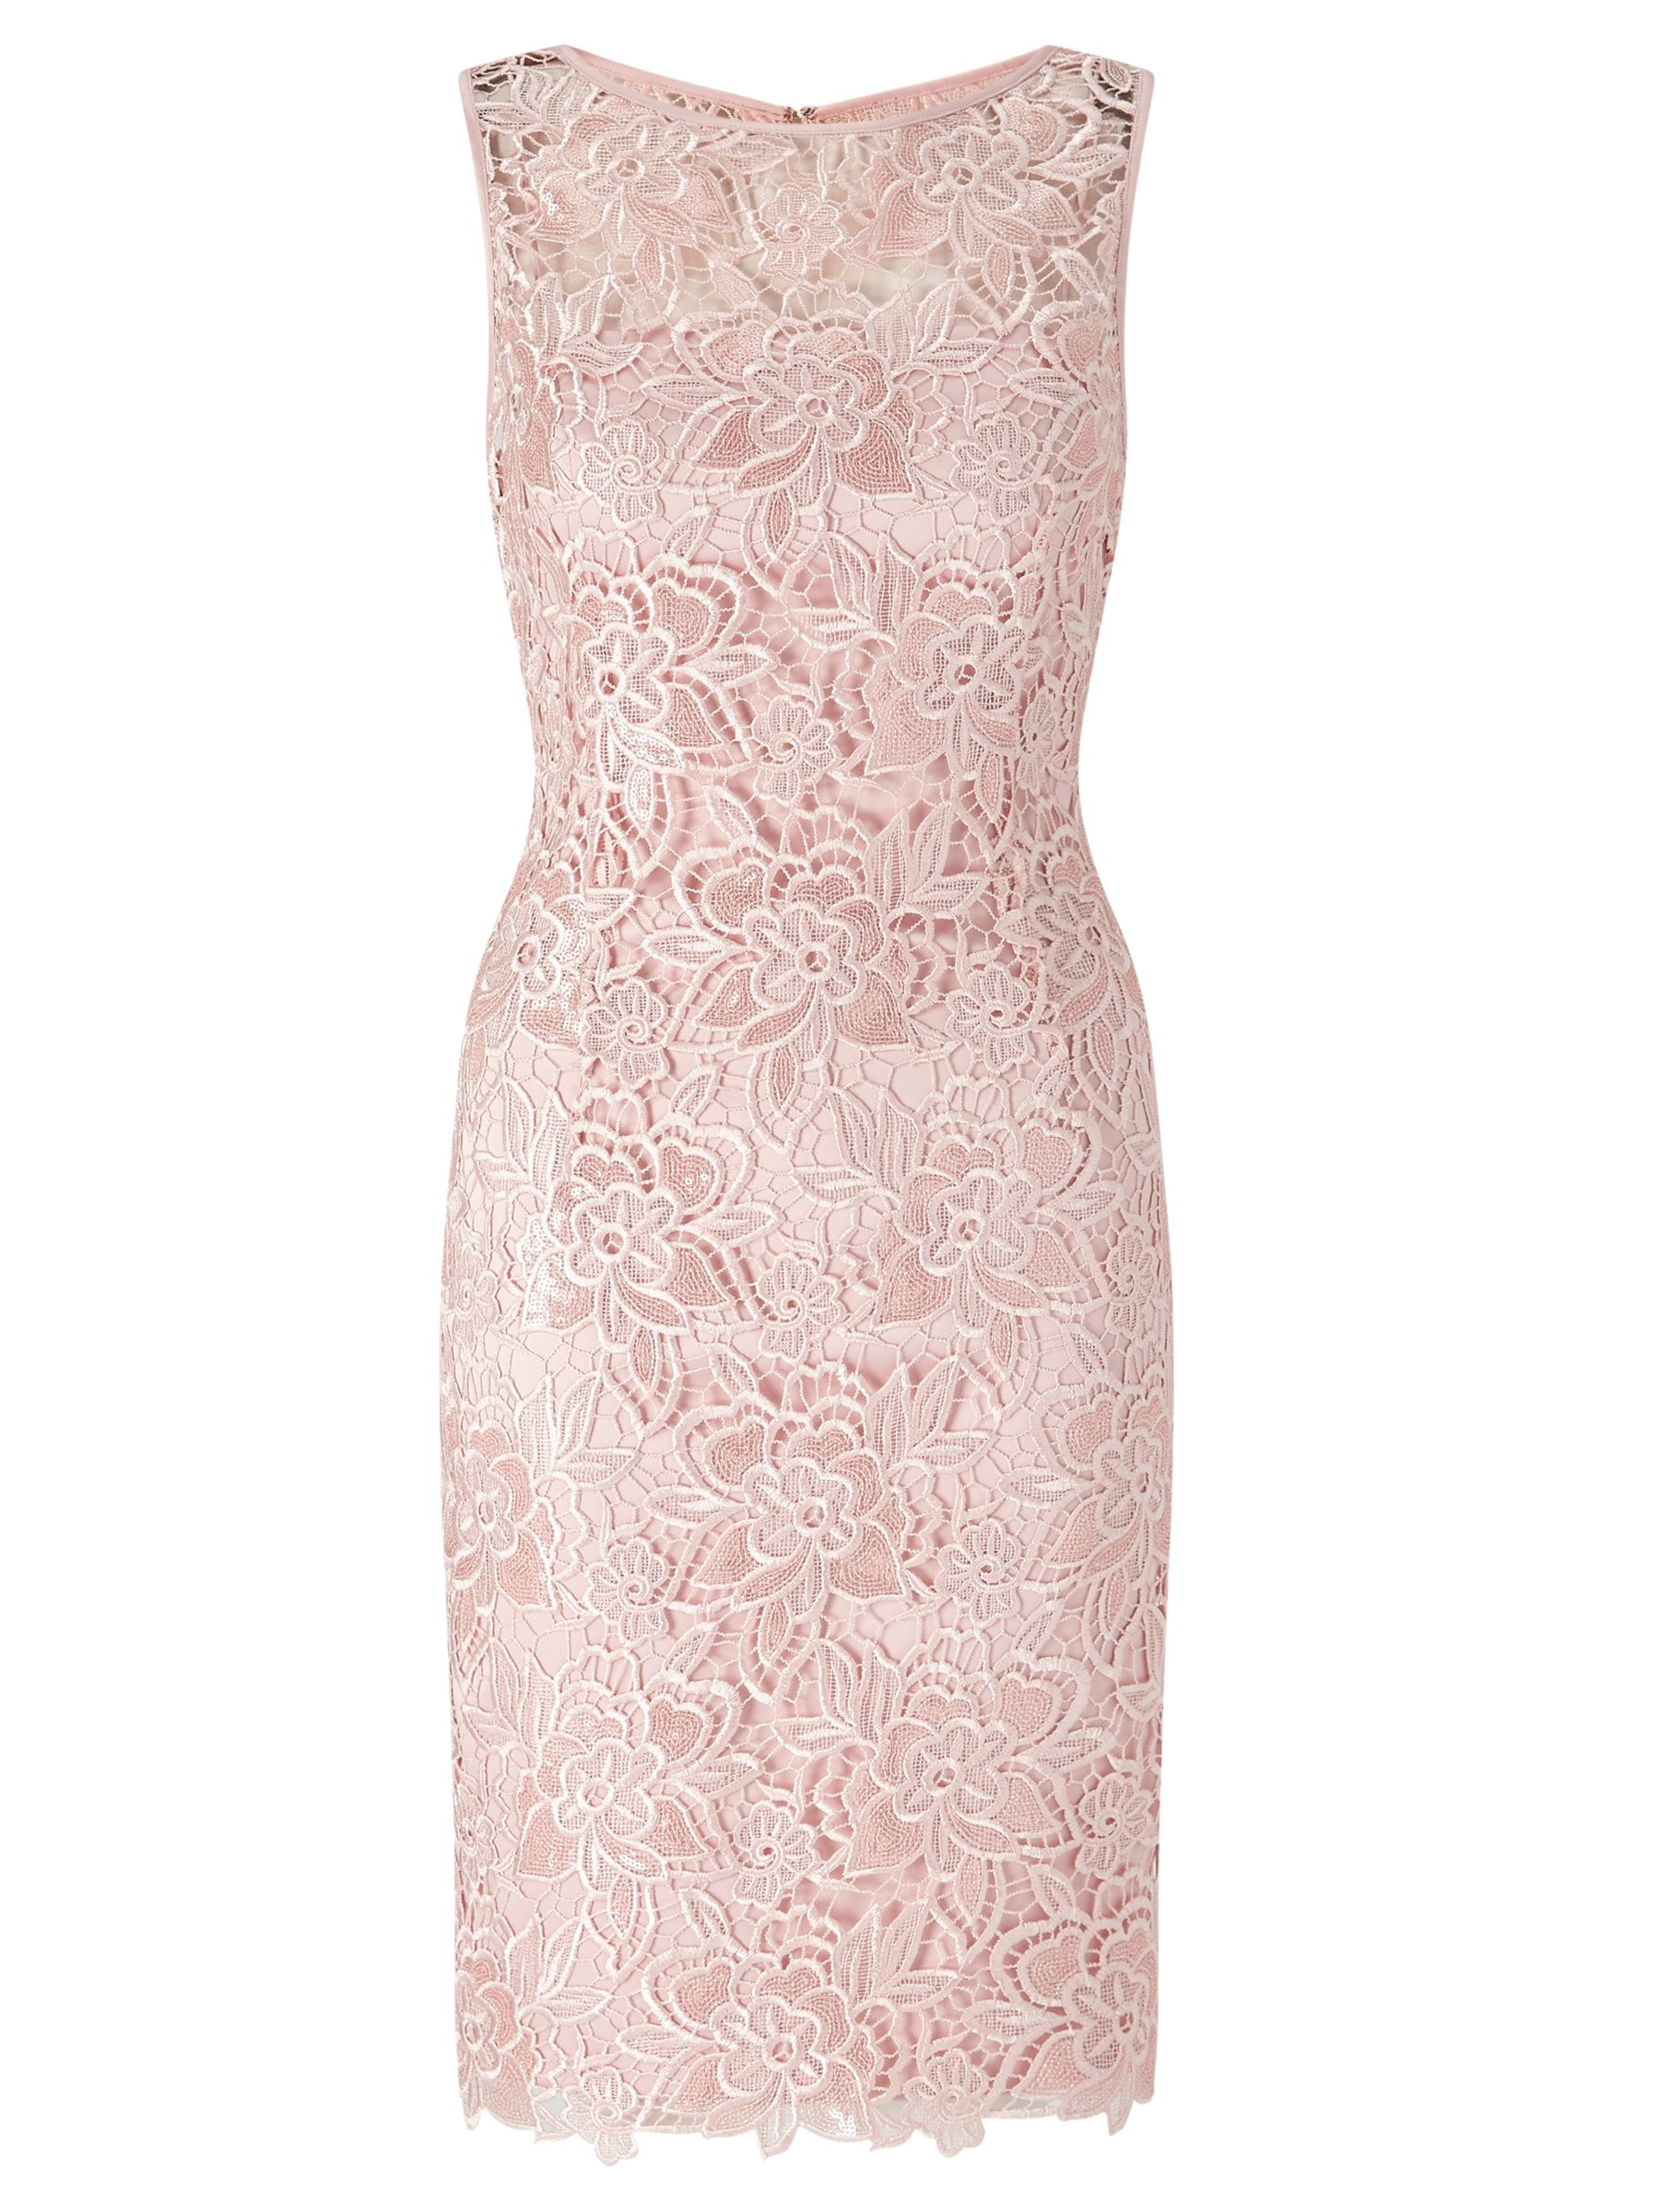 Adrianna Papell Adrianna Papell Sequin Guipure Lace Sheath Dress, Blush